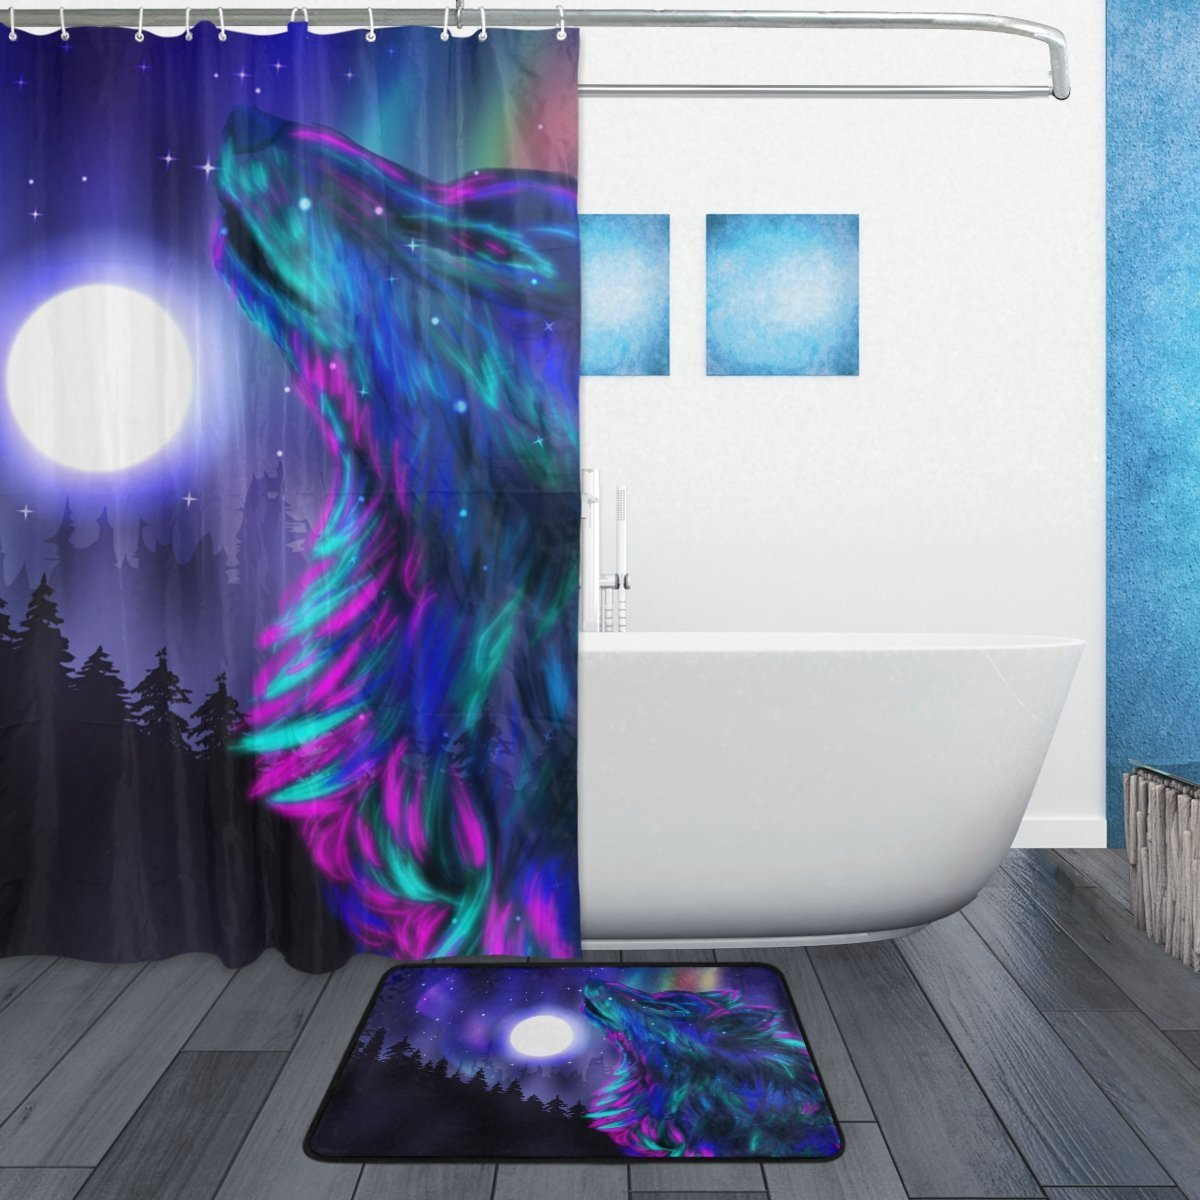 BAIHUISHOP Tree Wolf Moon Night 3-Piece Bathroom Set, Machine Washable for Everyday Use,Includes 60x72 Inch Waterproof Shower Curtain, 12 Shower Hooks and 1 Non-slip Bathroom Rug Carpet - Set of 3 by baihuishop (Image #2)